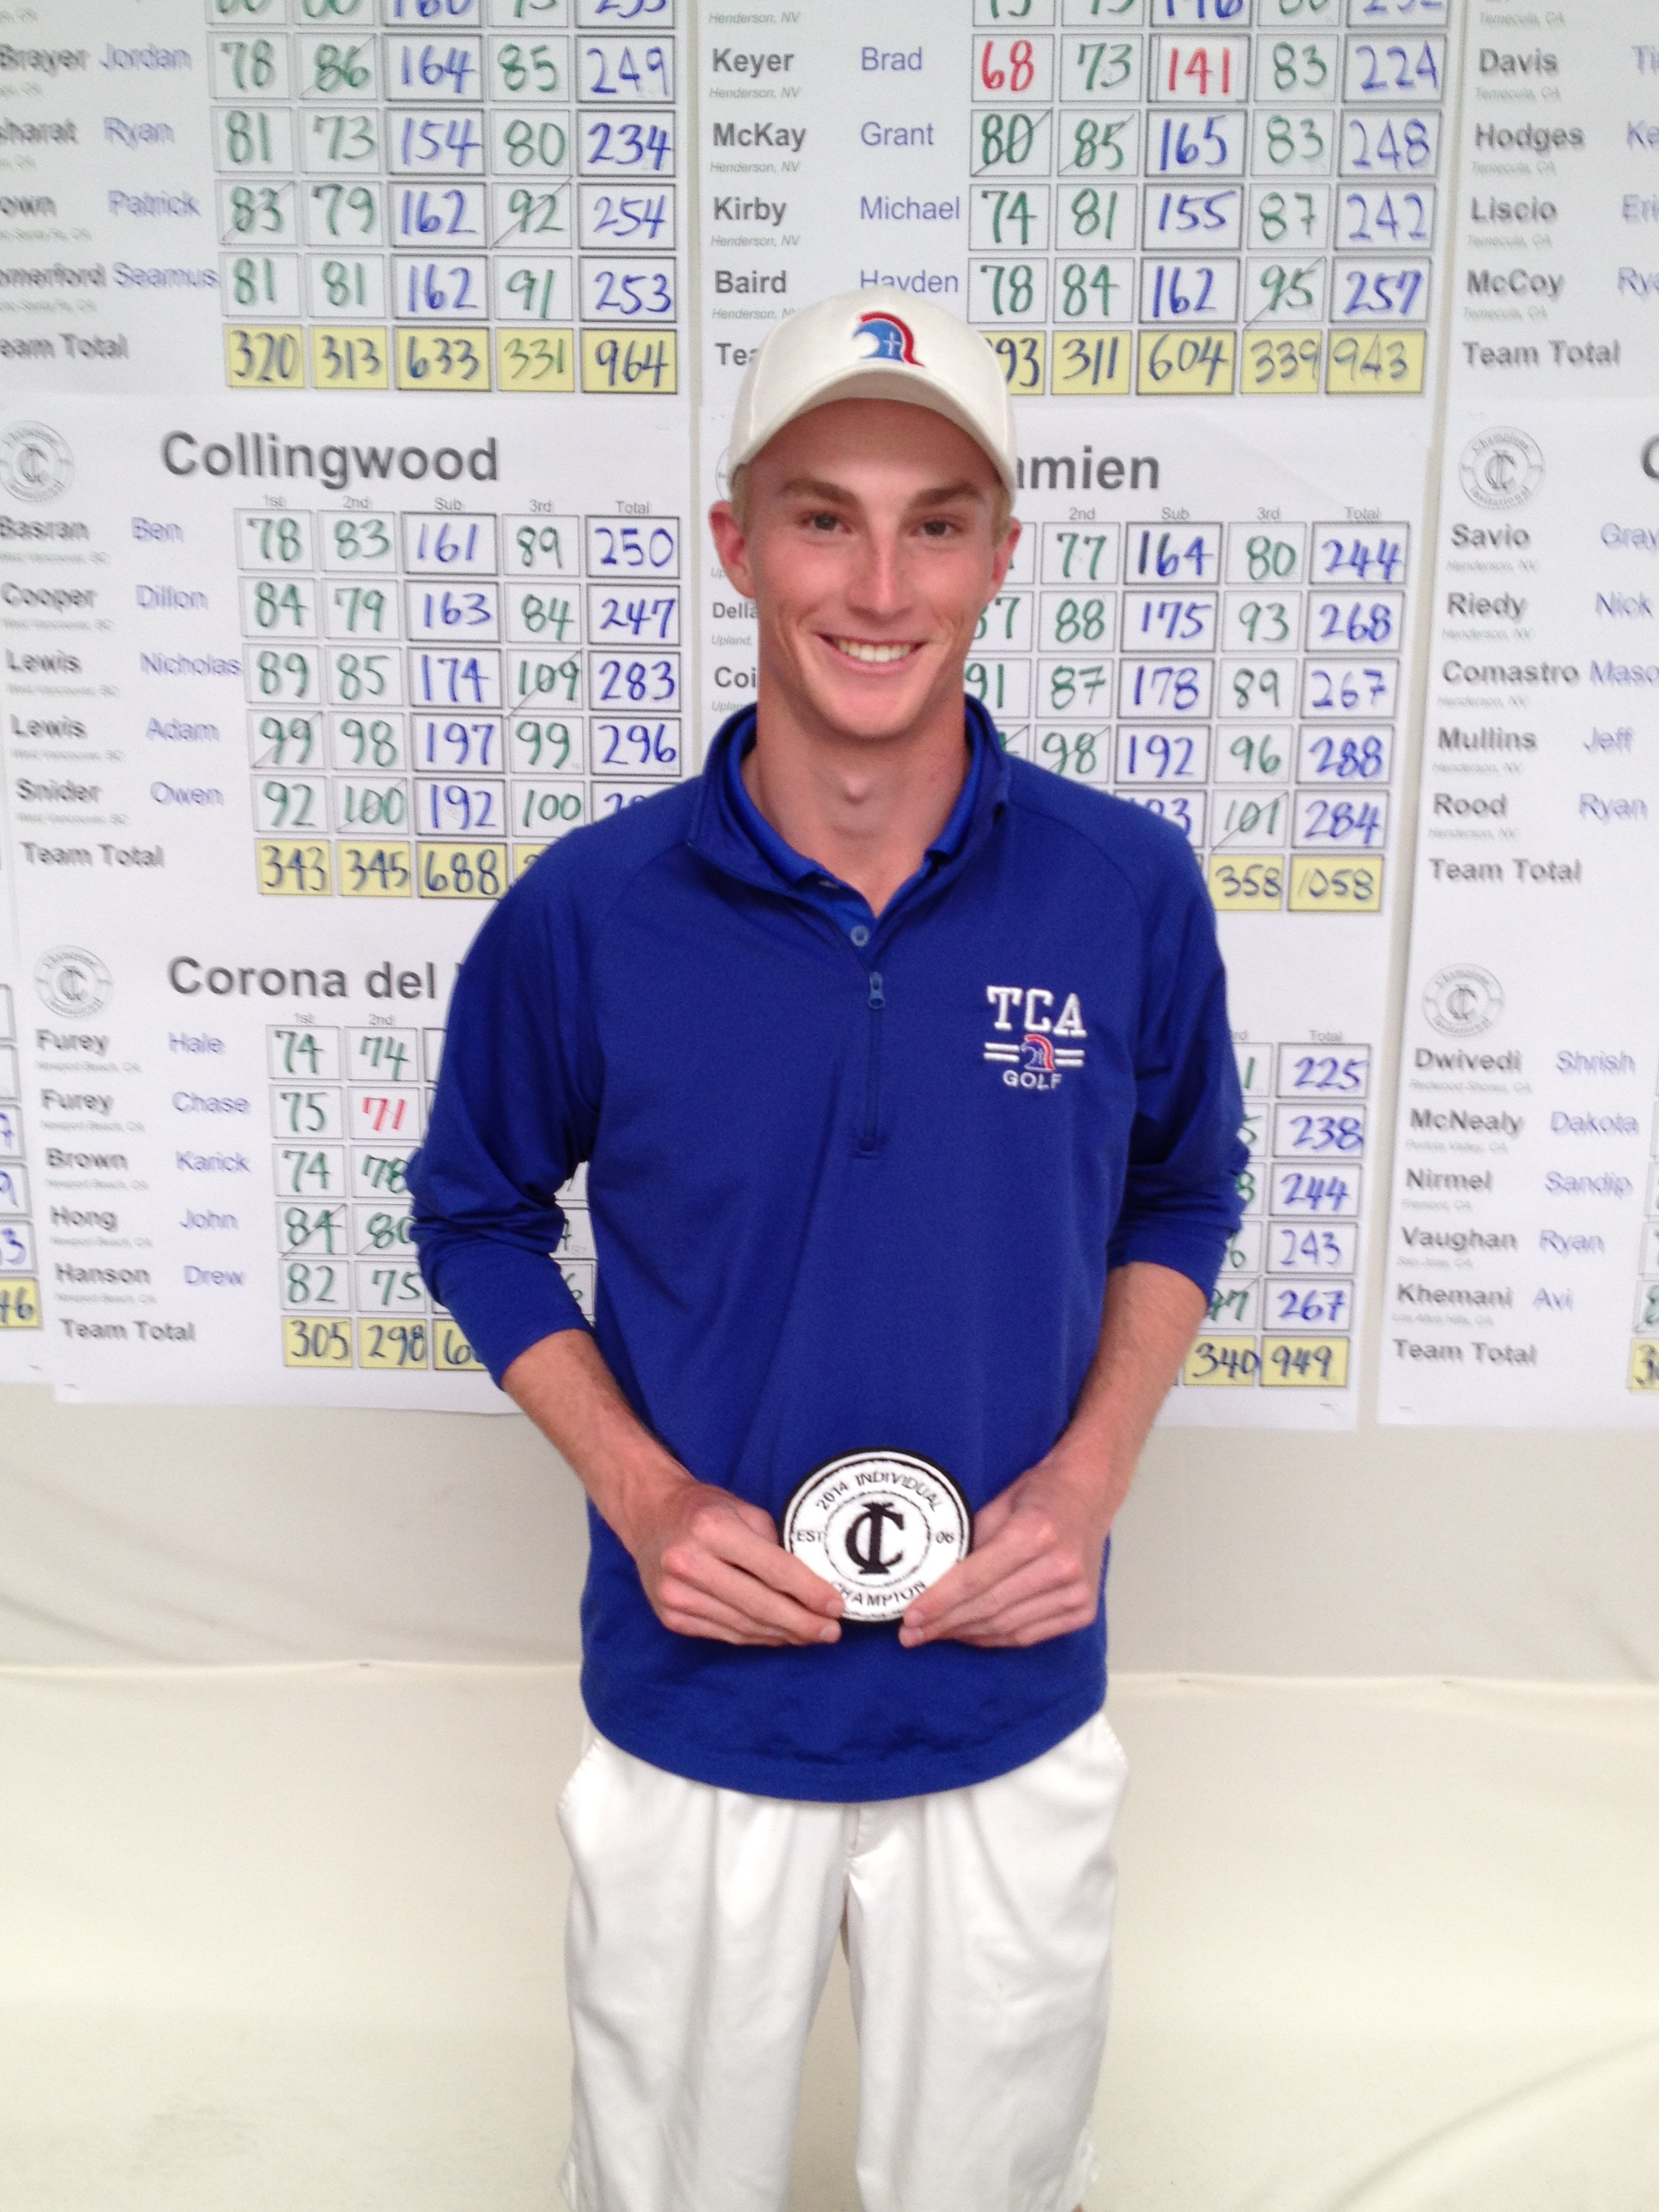 2014 Individual Medalist - Will Zalatoris